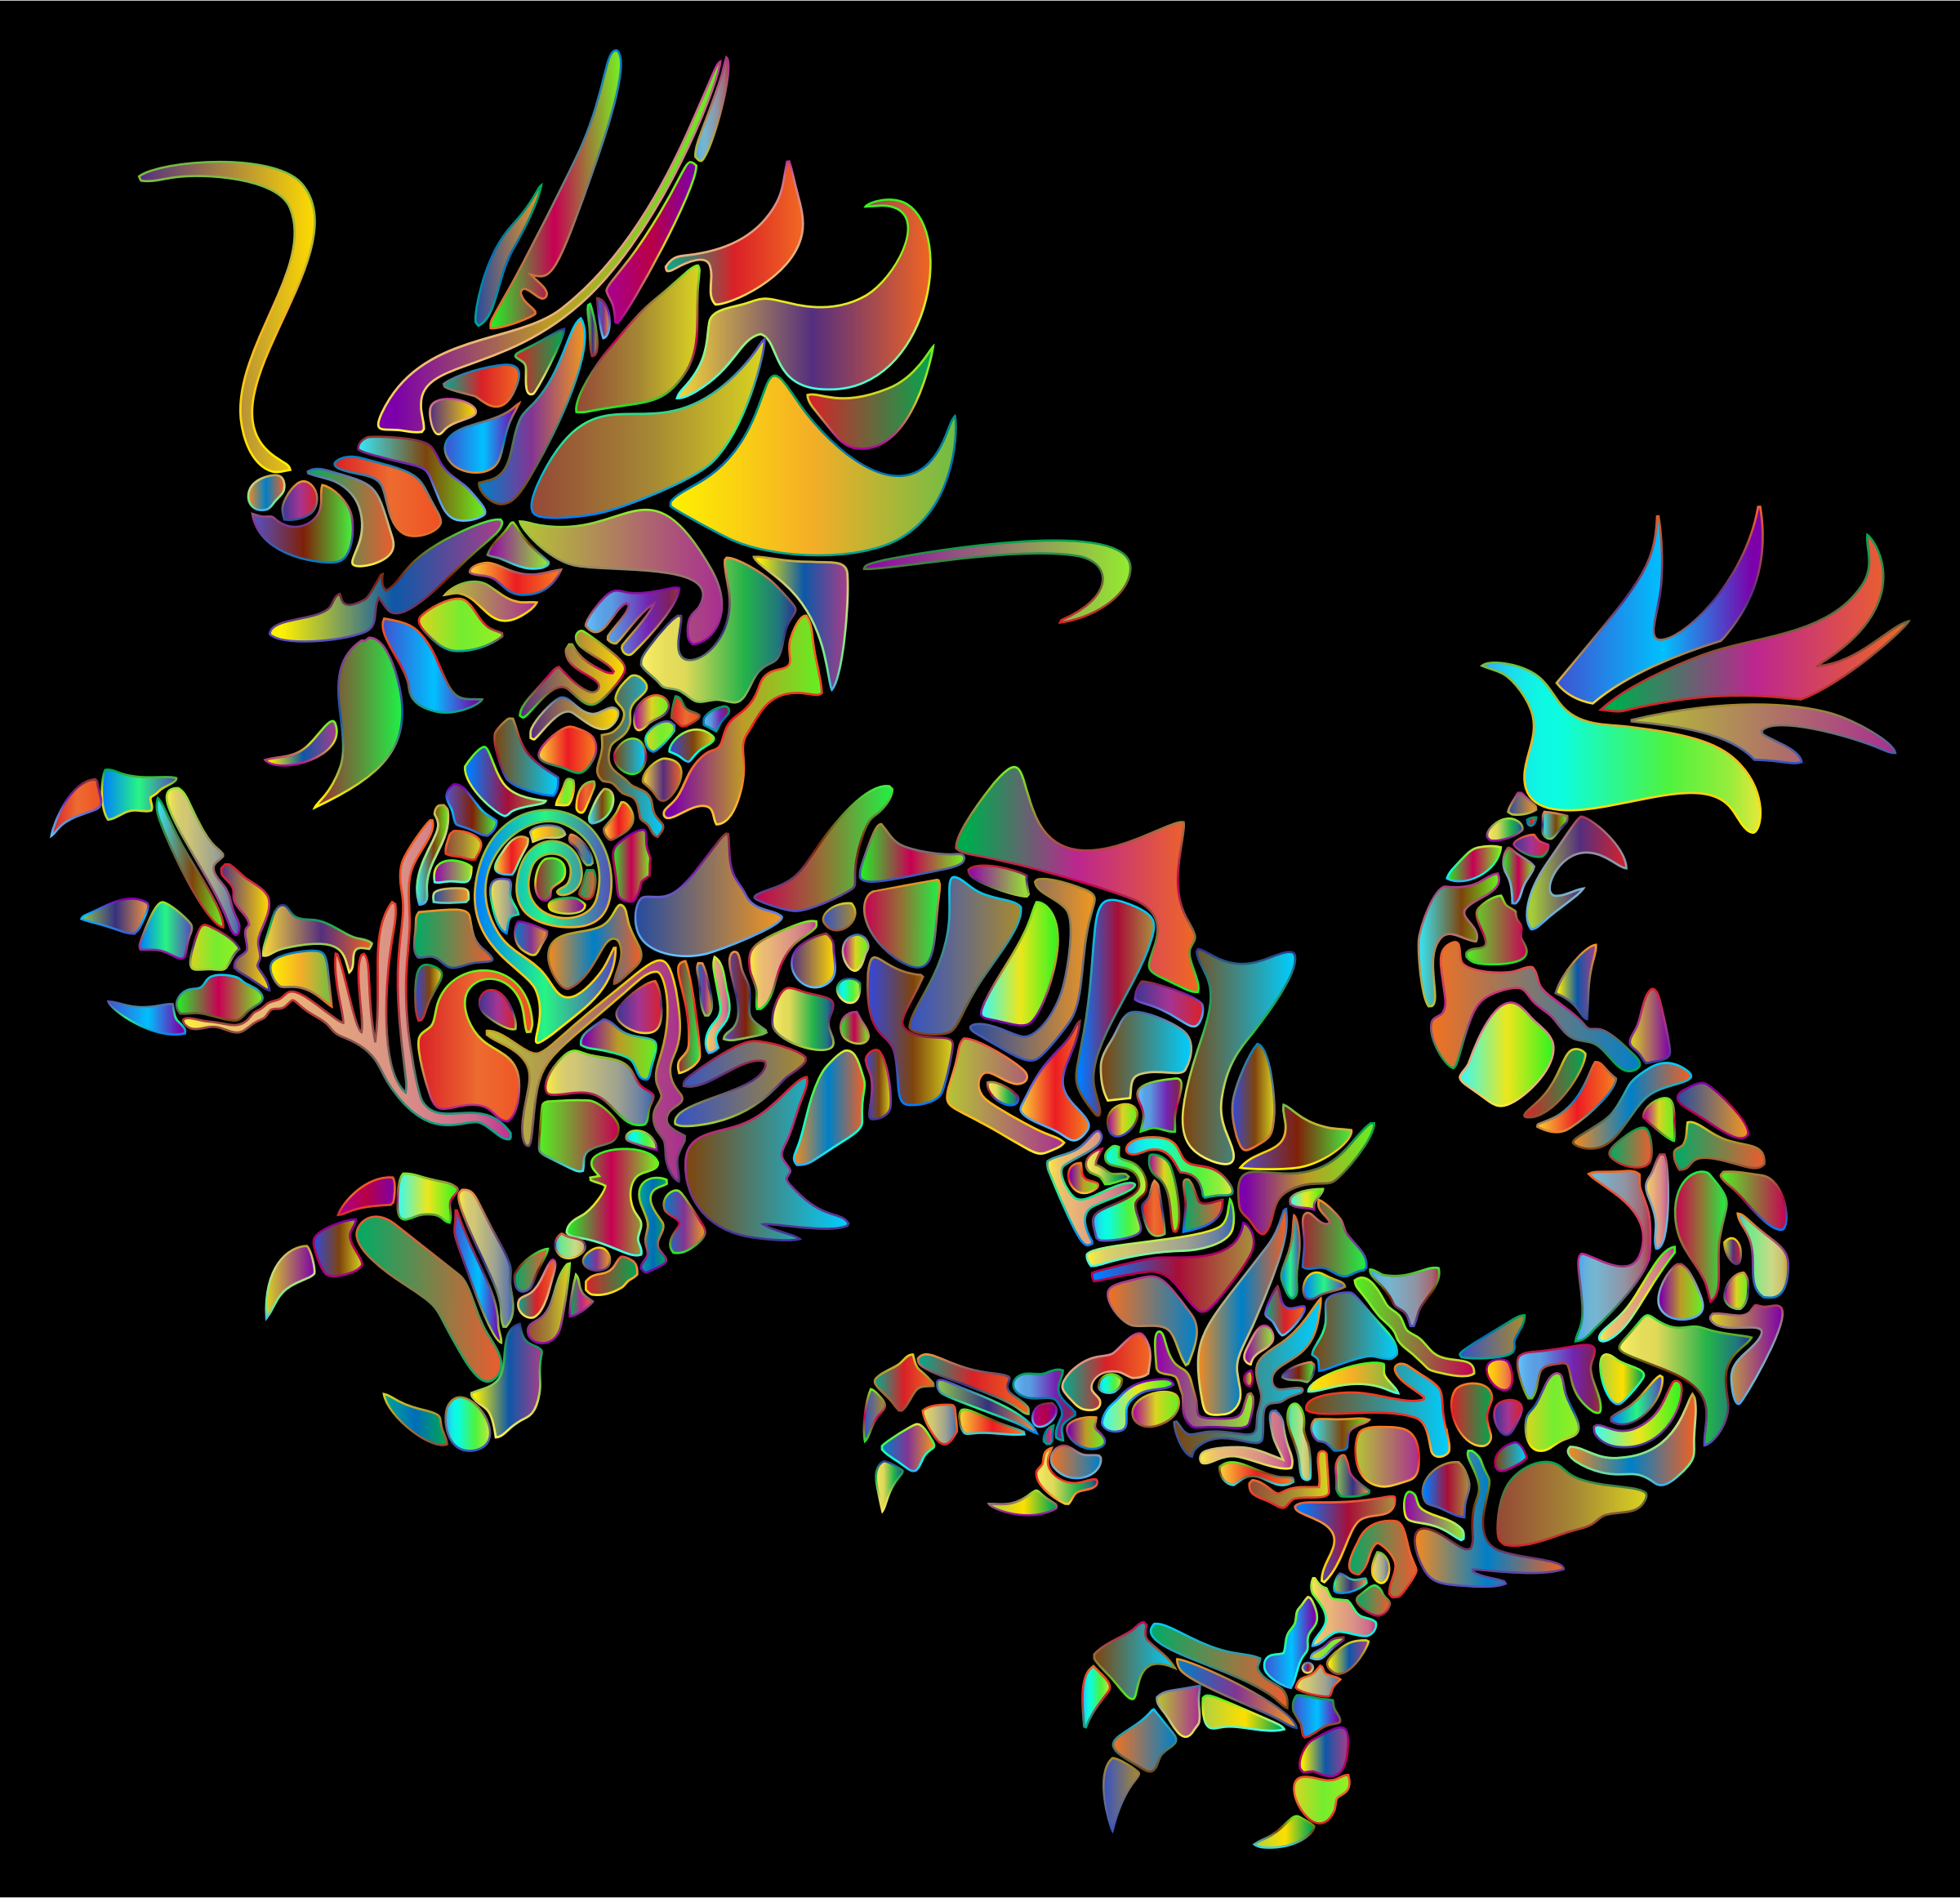 Polyprismatic Tribal Asian Dragon Silhouette by GDJ